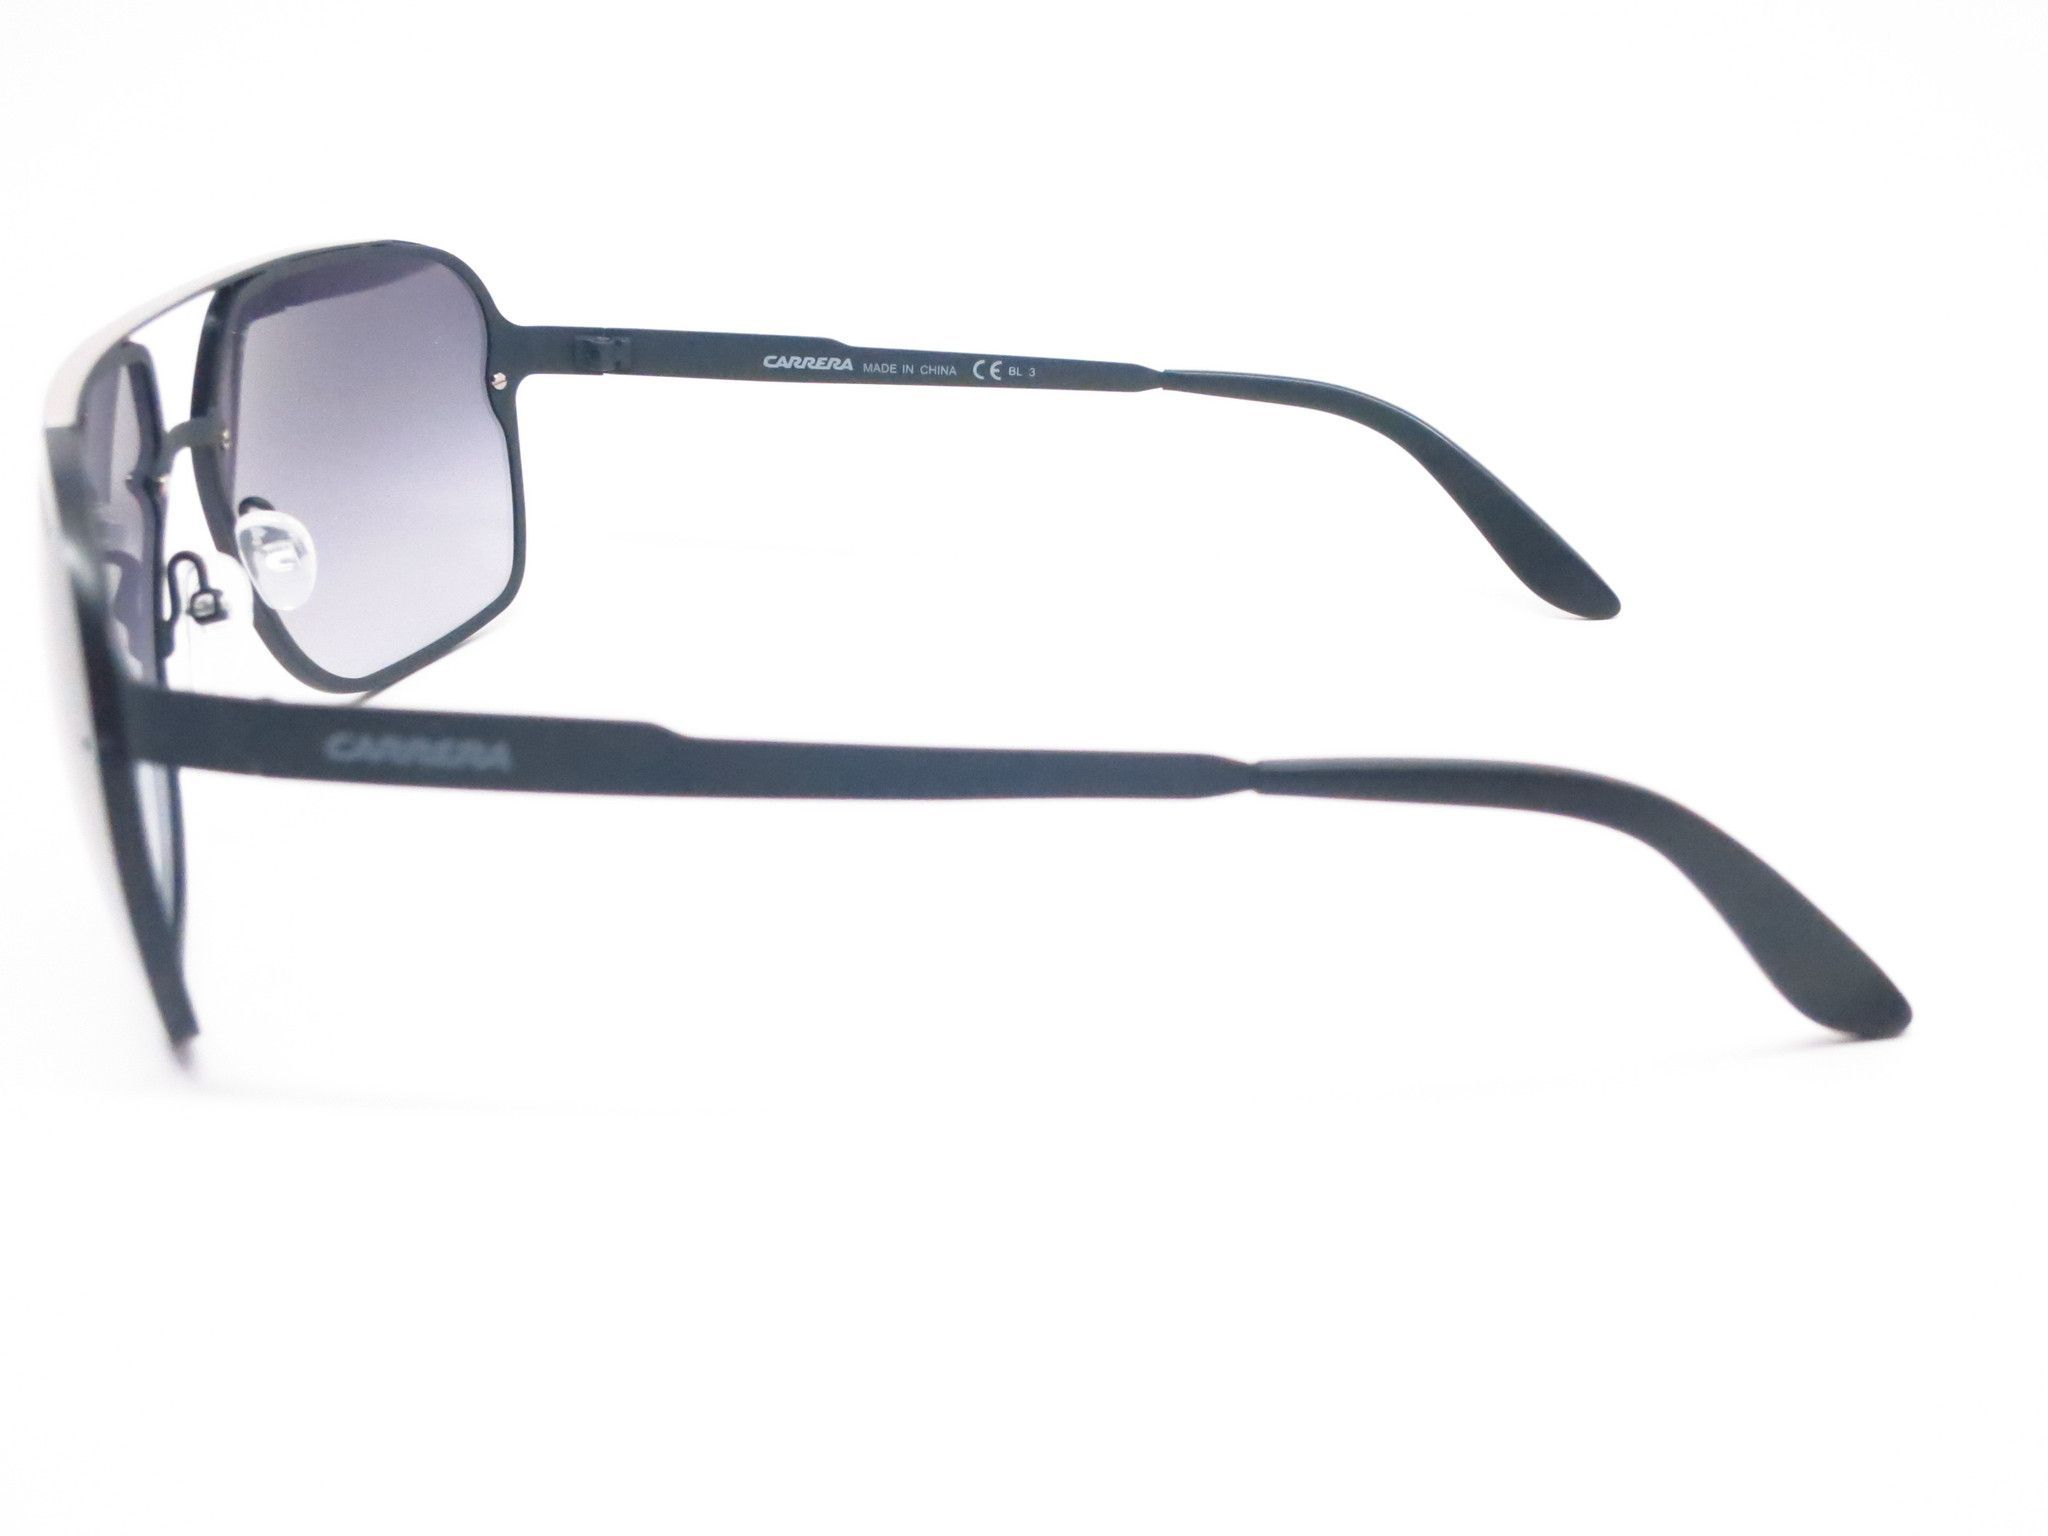 Features of the Carrera 91 S 003HD Sunglasses - Squared metal front with  metal temples 2361a0dab08